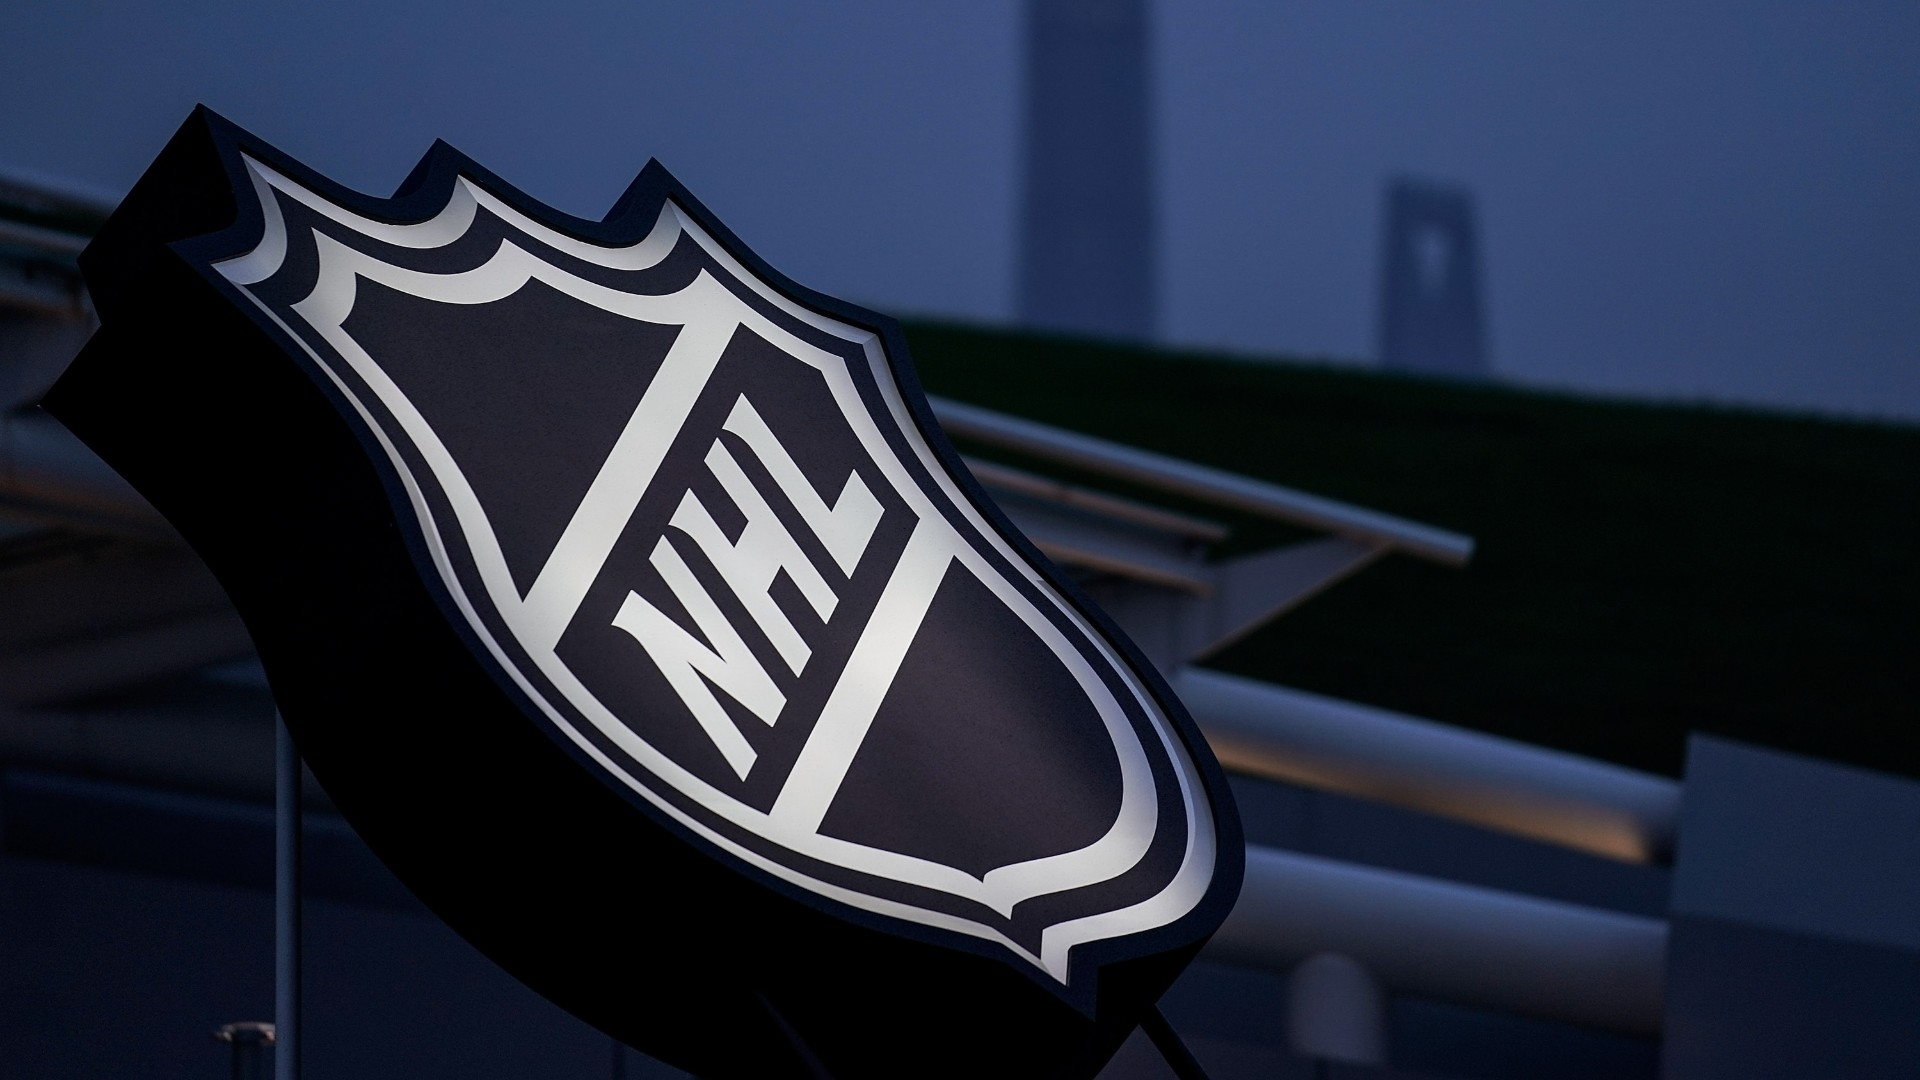 NHL offseason trade tracker 2020 List of deals completed